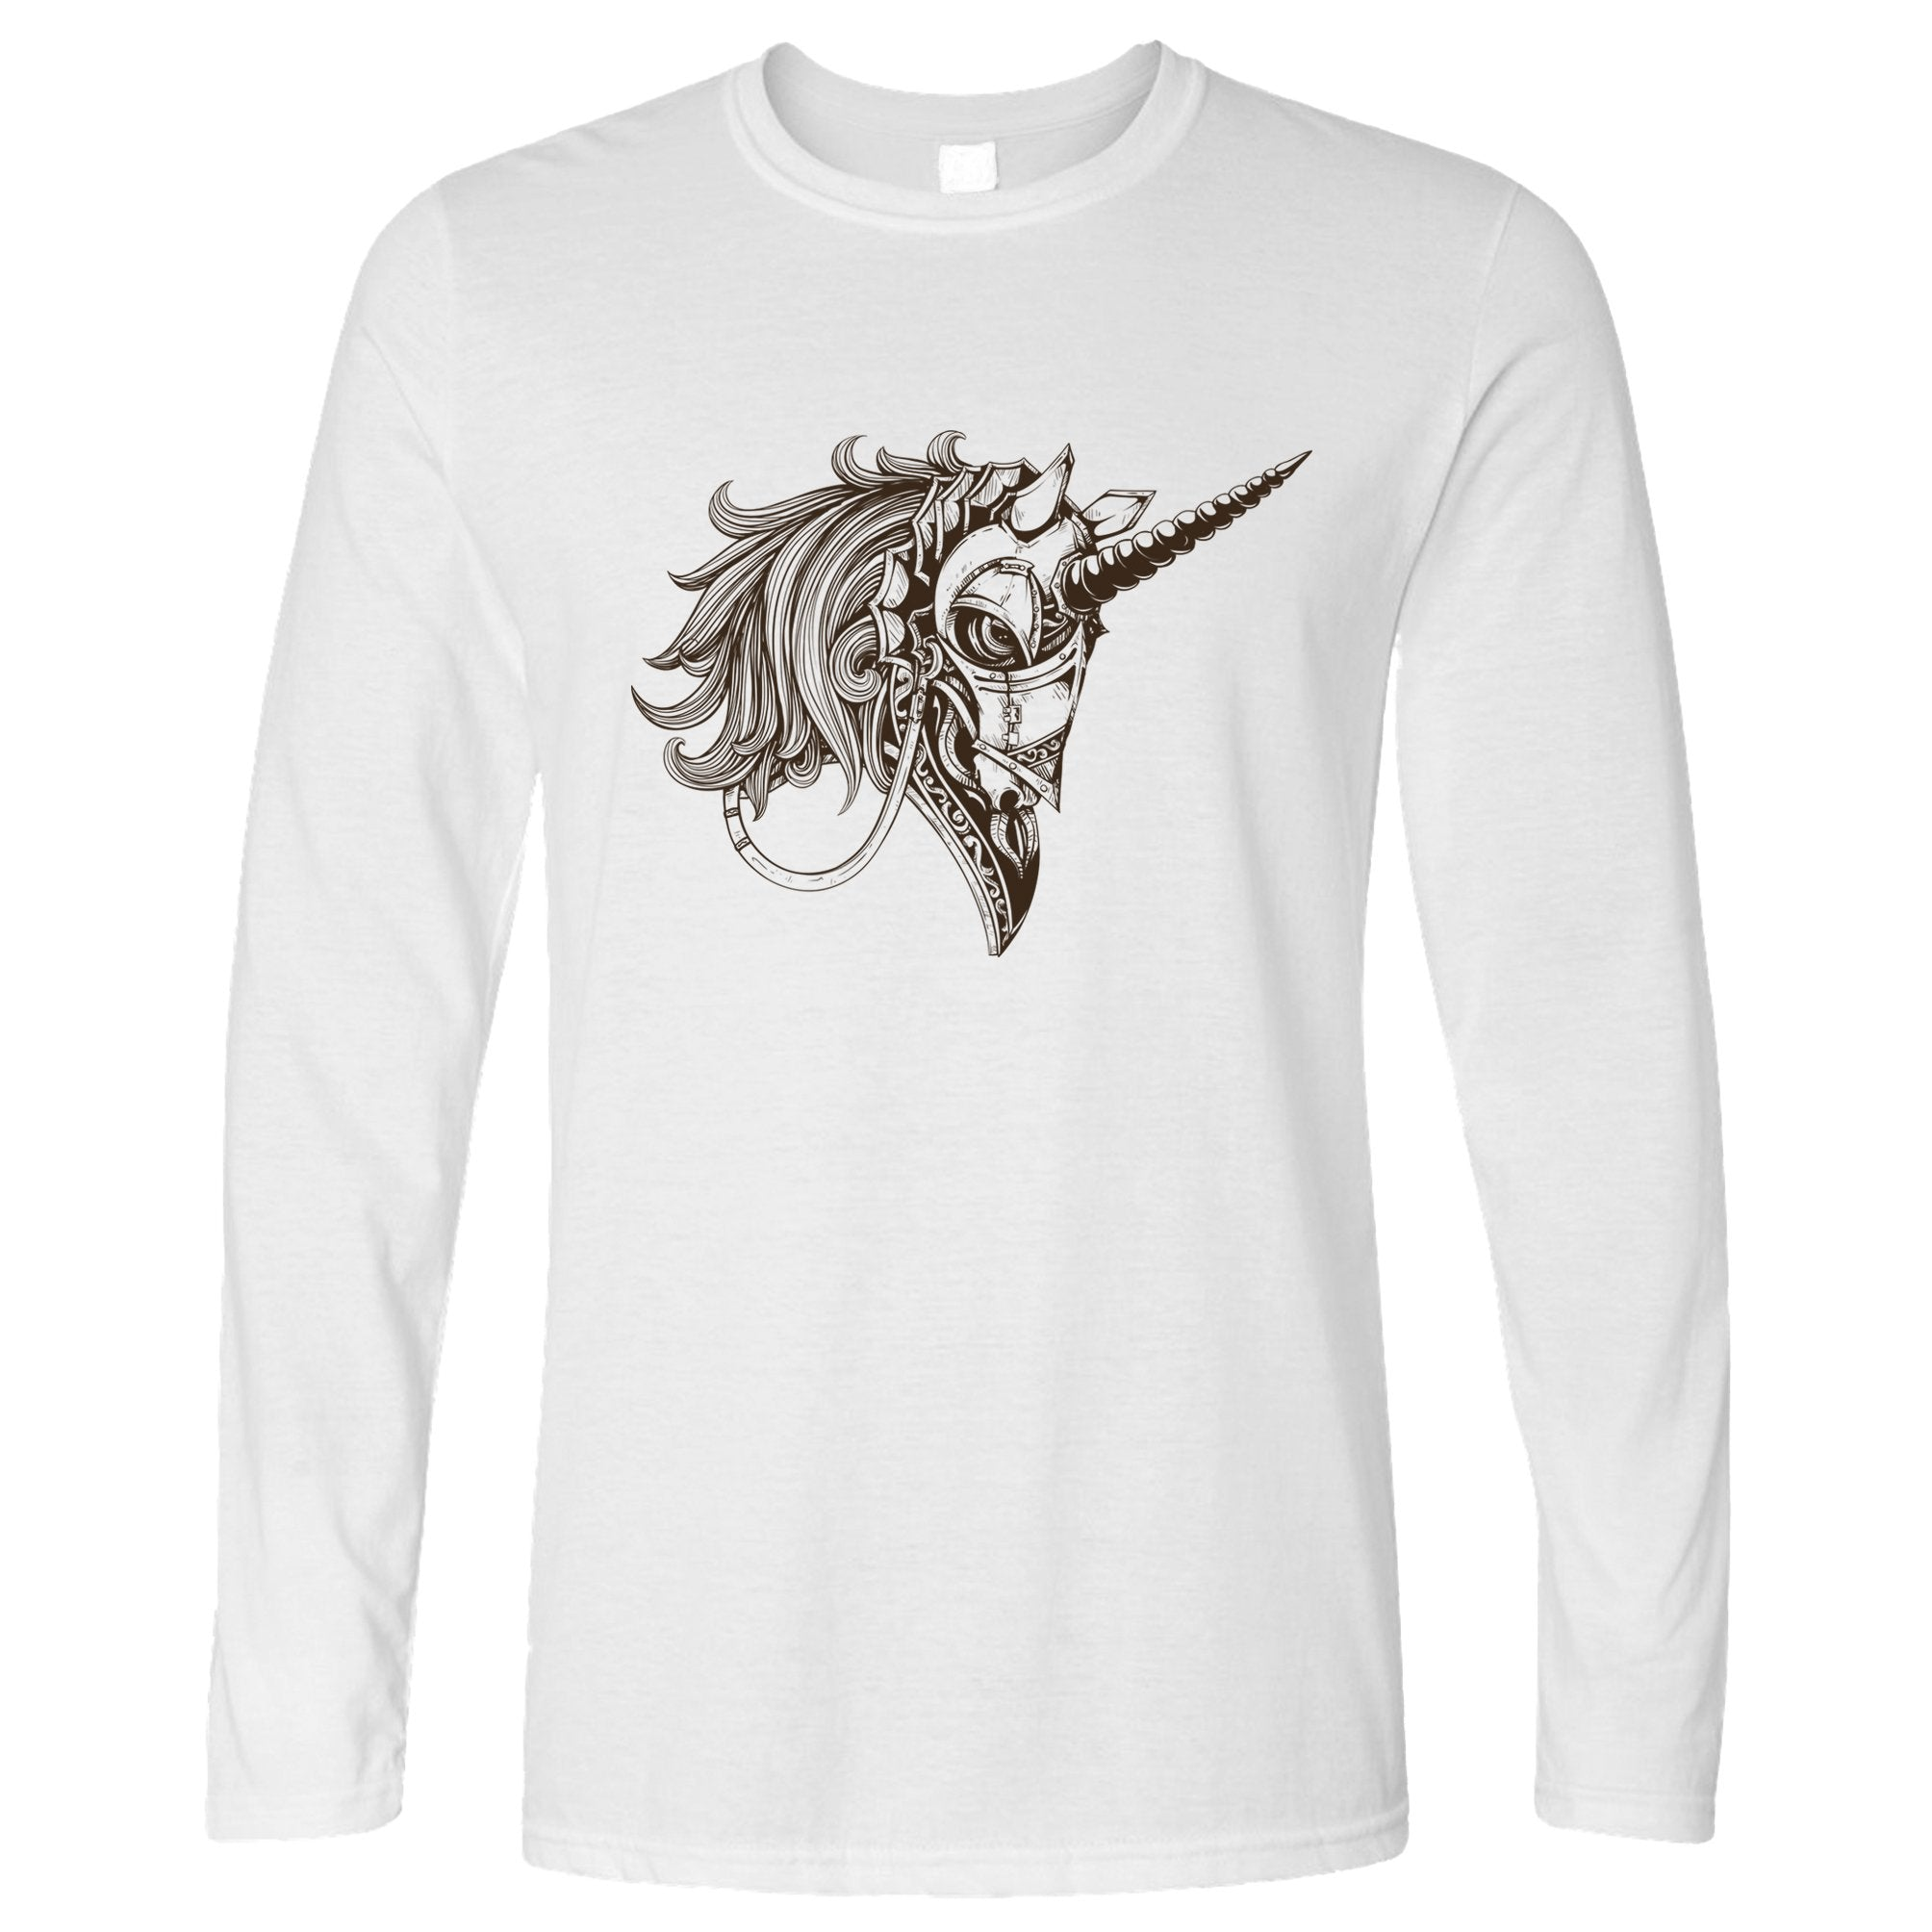 Gothic Art Long Sleeve Armoured Unicorn Graphic T-Shirt